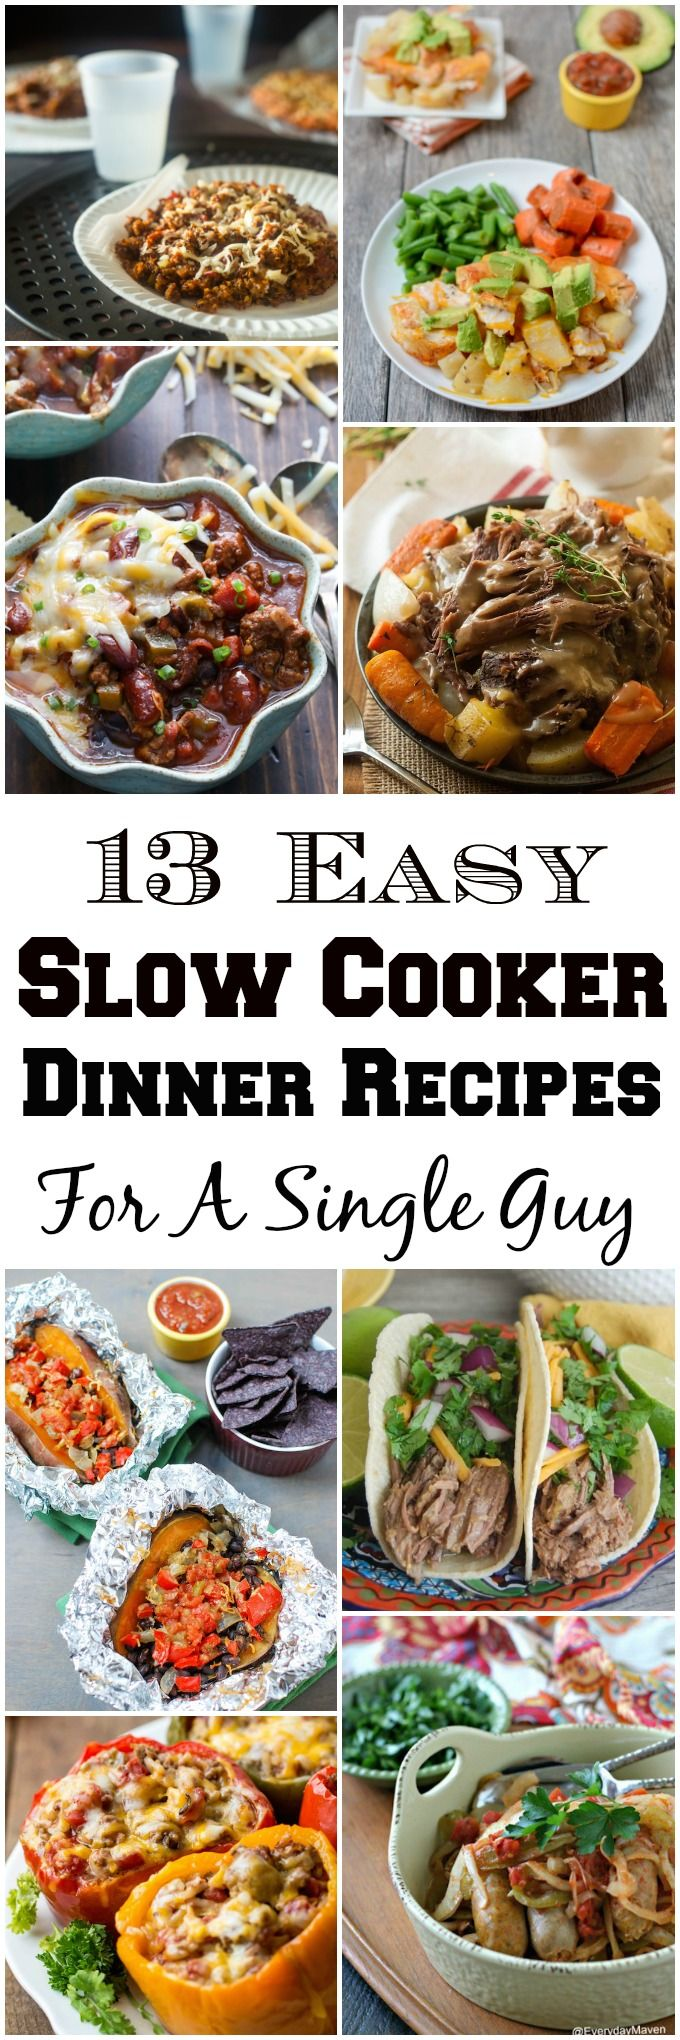 These Easy Slow Cooker Dinner Recipes For A Single Guy are hearty, nutritious and easy enough for even men who don't like to cook but can handle a crockpot.